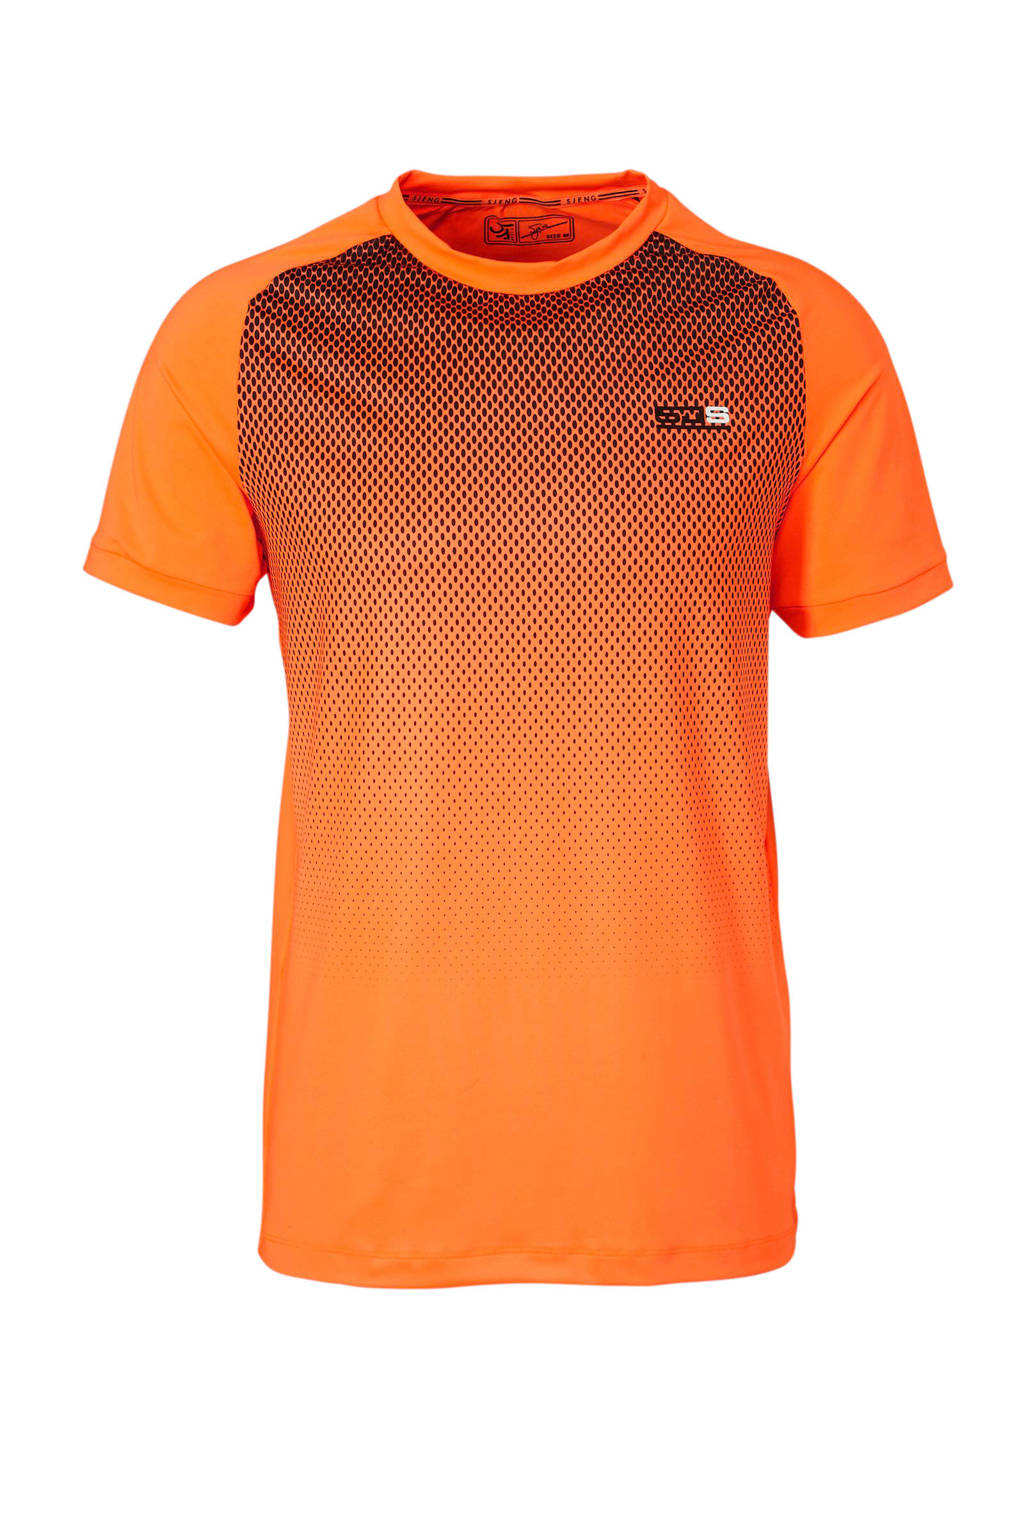 Sjeng Sports   performance sport T-shirt oranje, Oranje